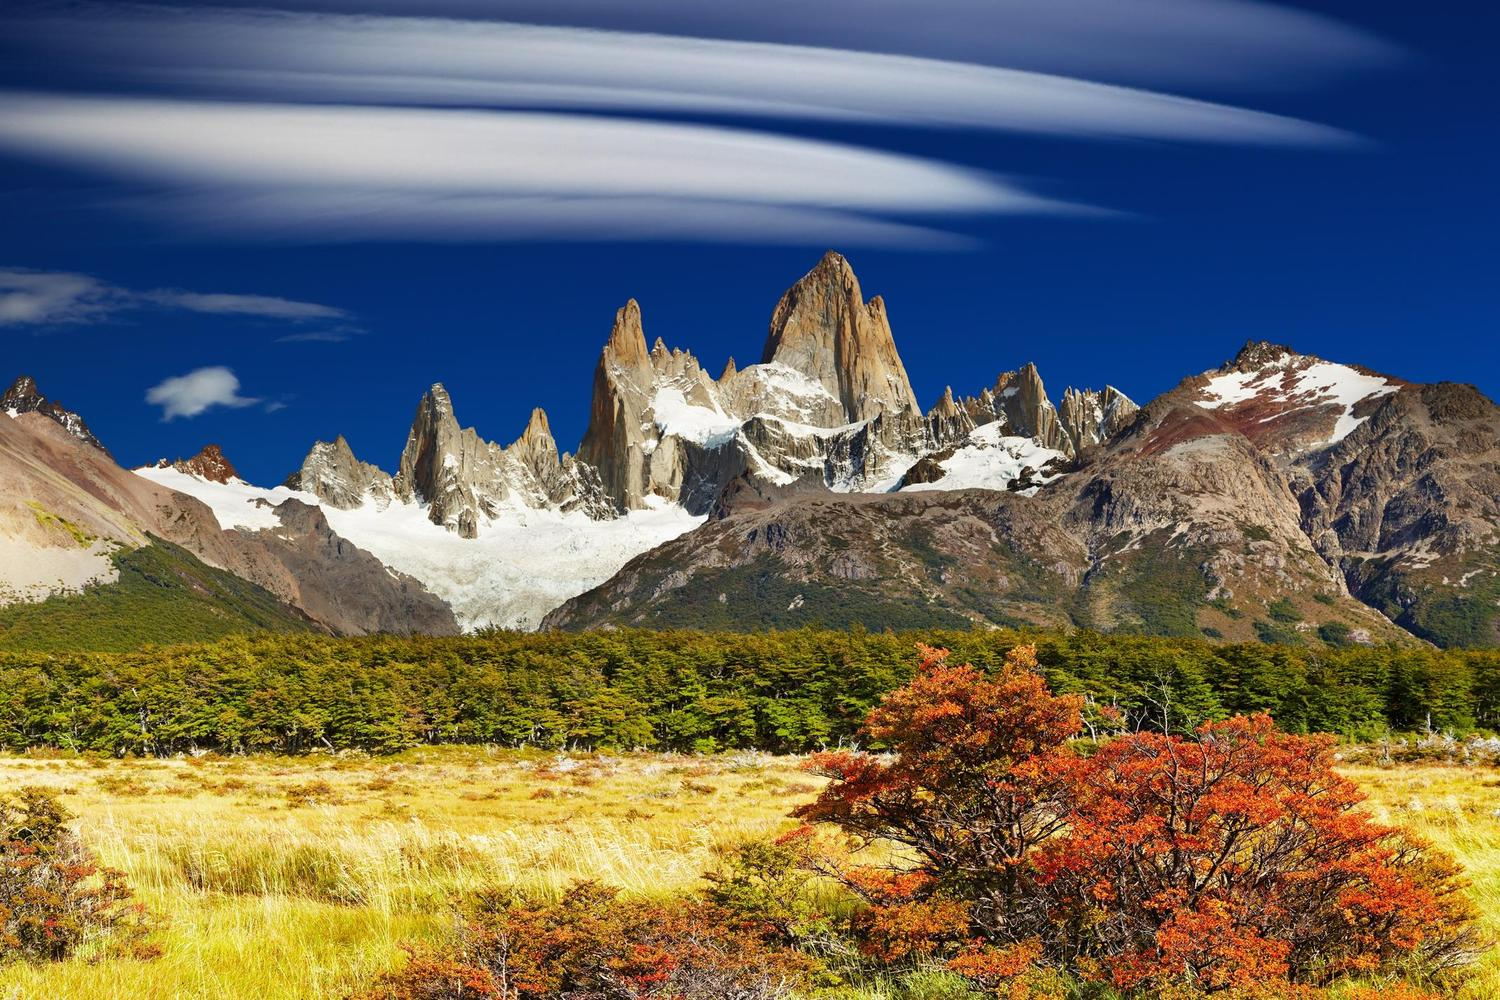 High winds create beautiful cloud formations over Fitzroy, Argentina